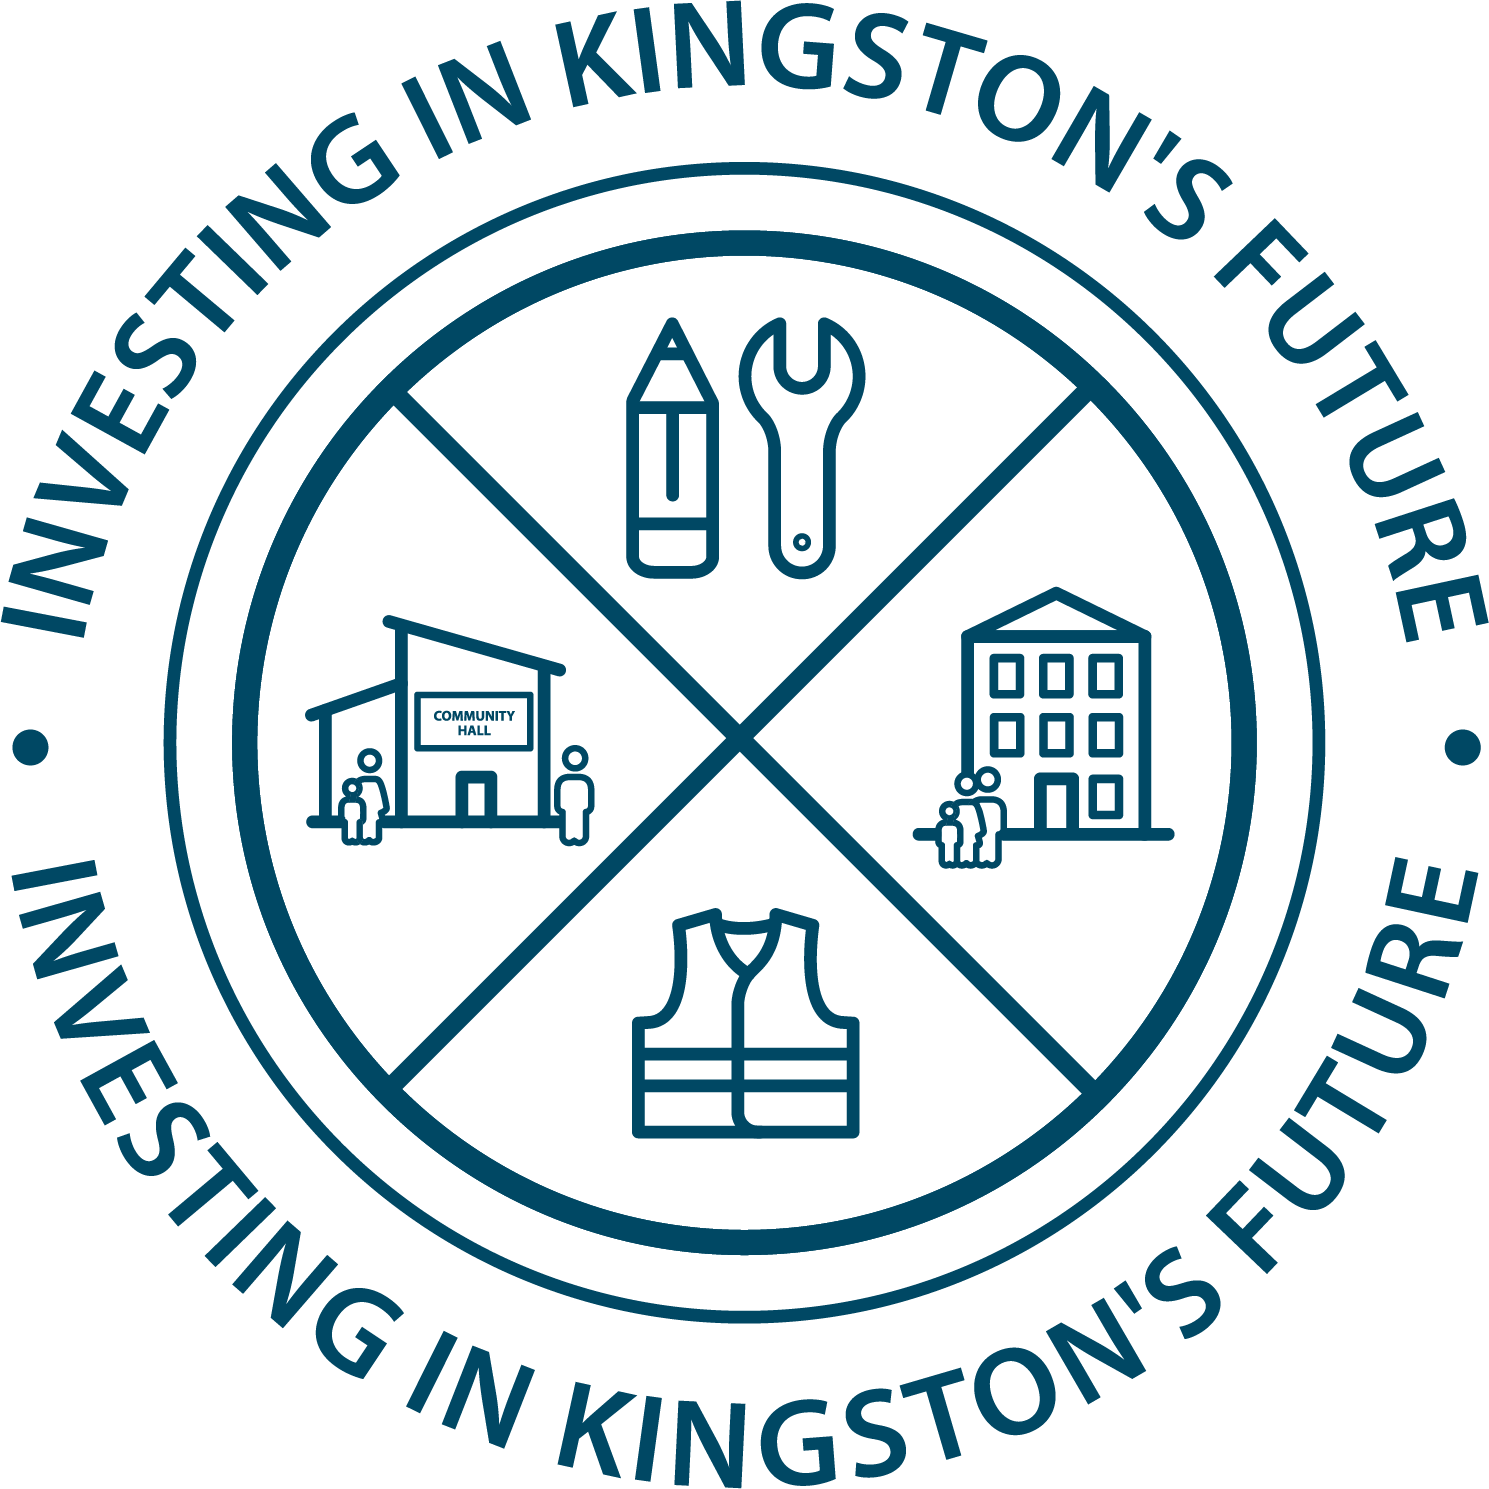 Investing in Kingston's future logo